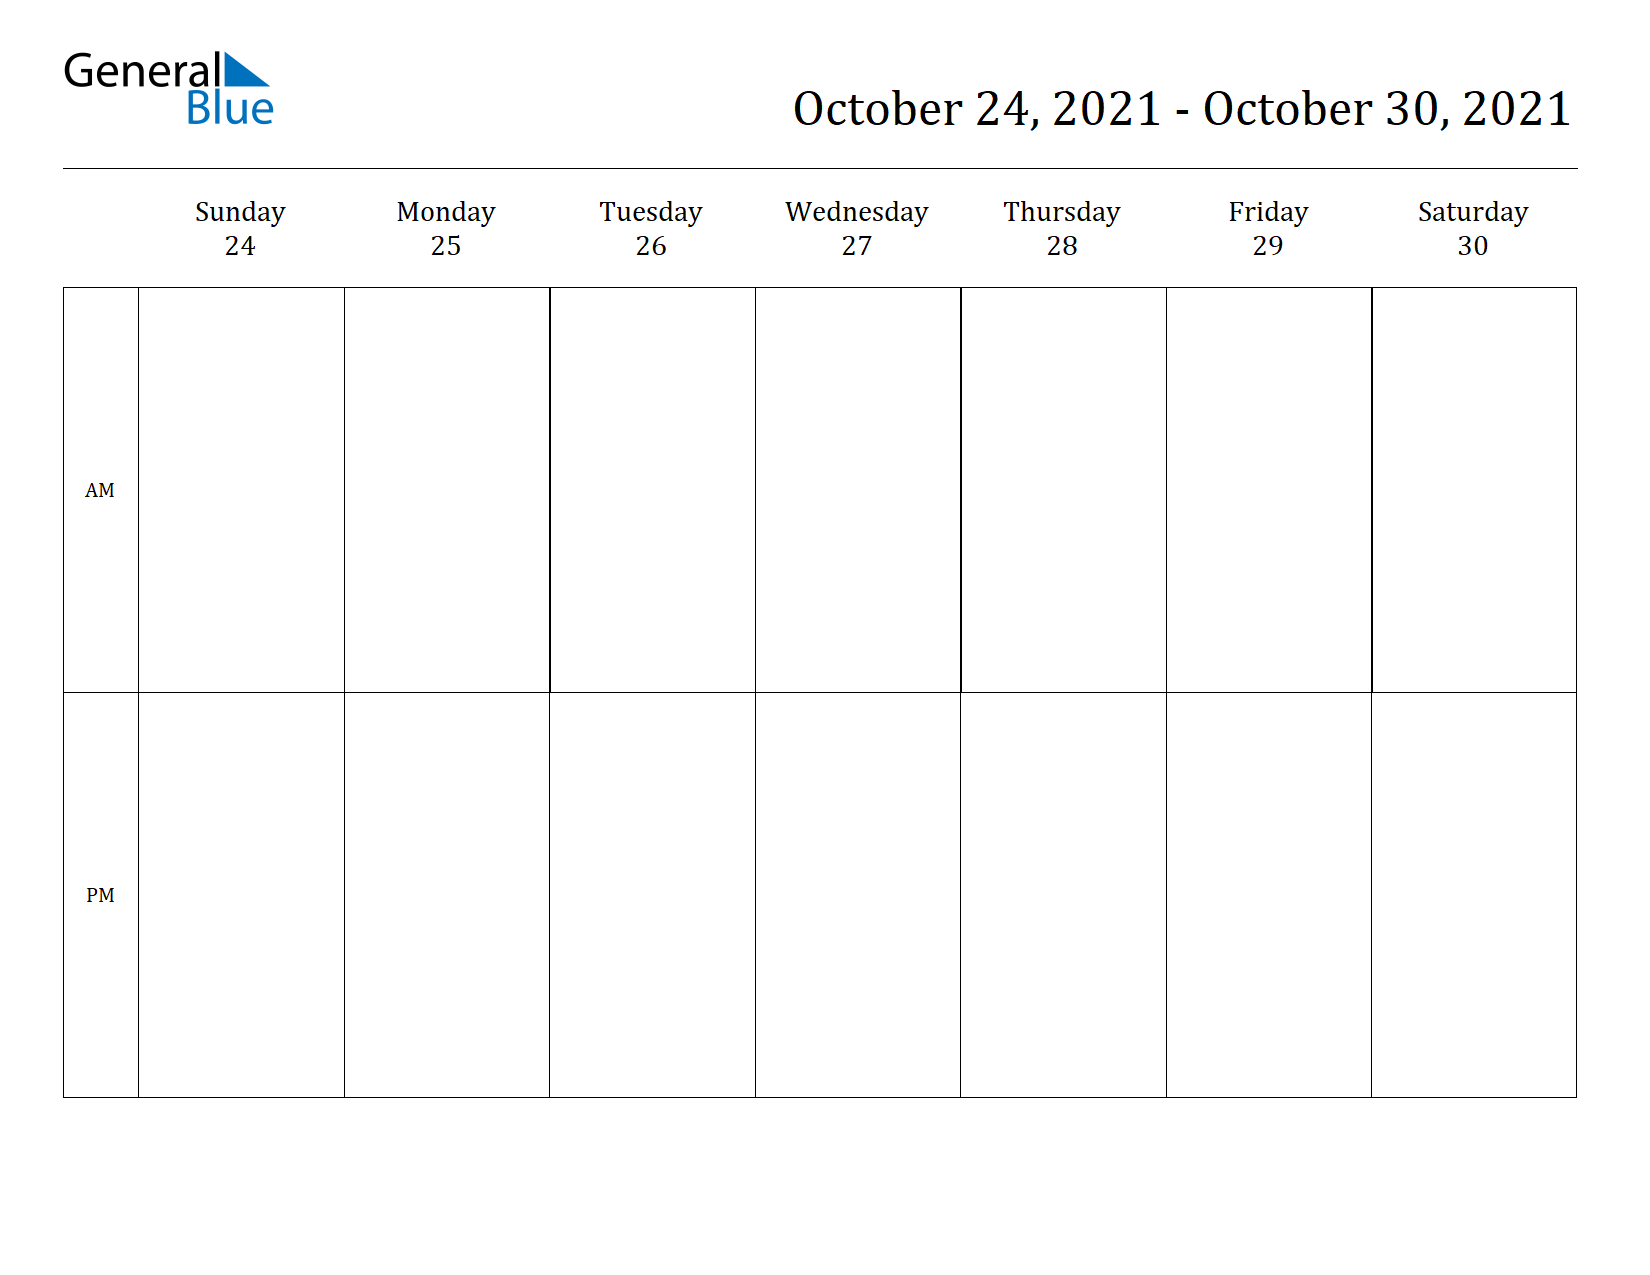 Weekly Calendar for Oct 24, 2021 to Oct 30, 2021